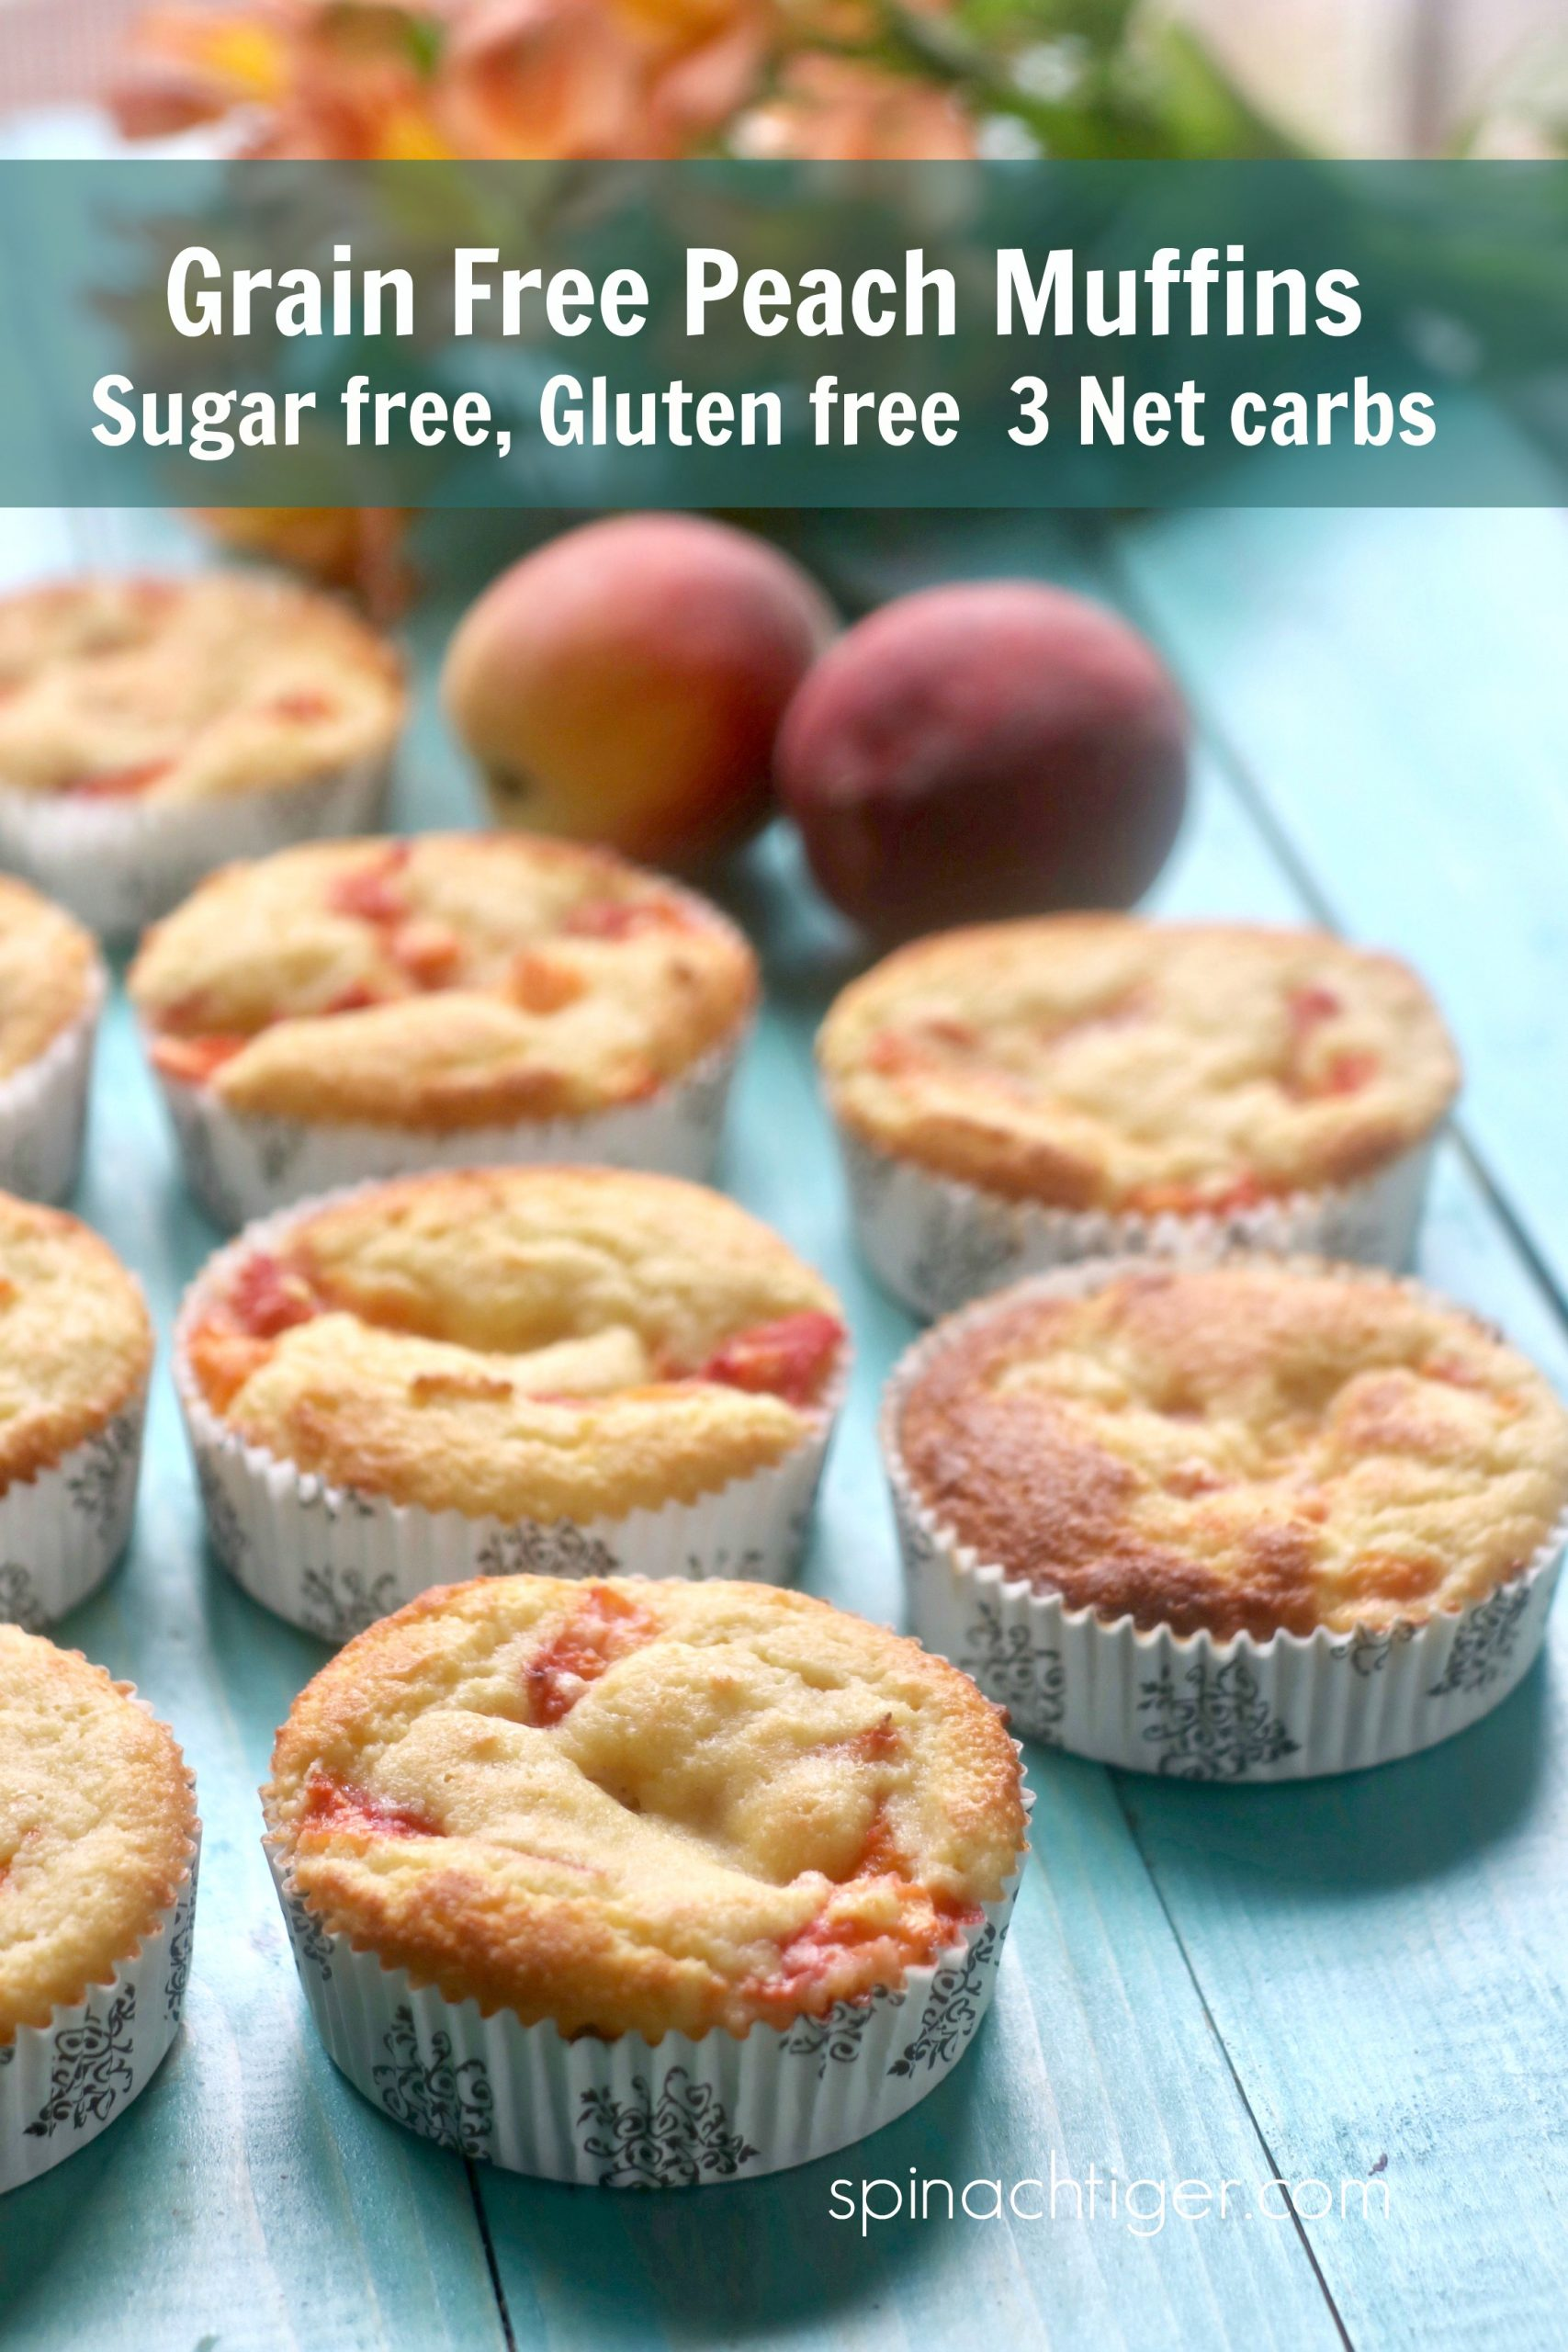 Make easy fresh peach muffins, grain free, gluten free and sugar free, with a perfect muffin texture. 3 Net Carbs. #swerve #peachtruck via @angelaroberts